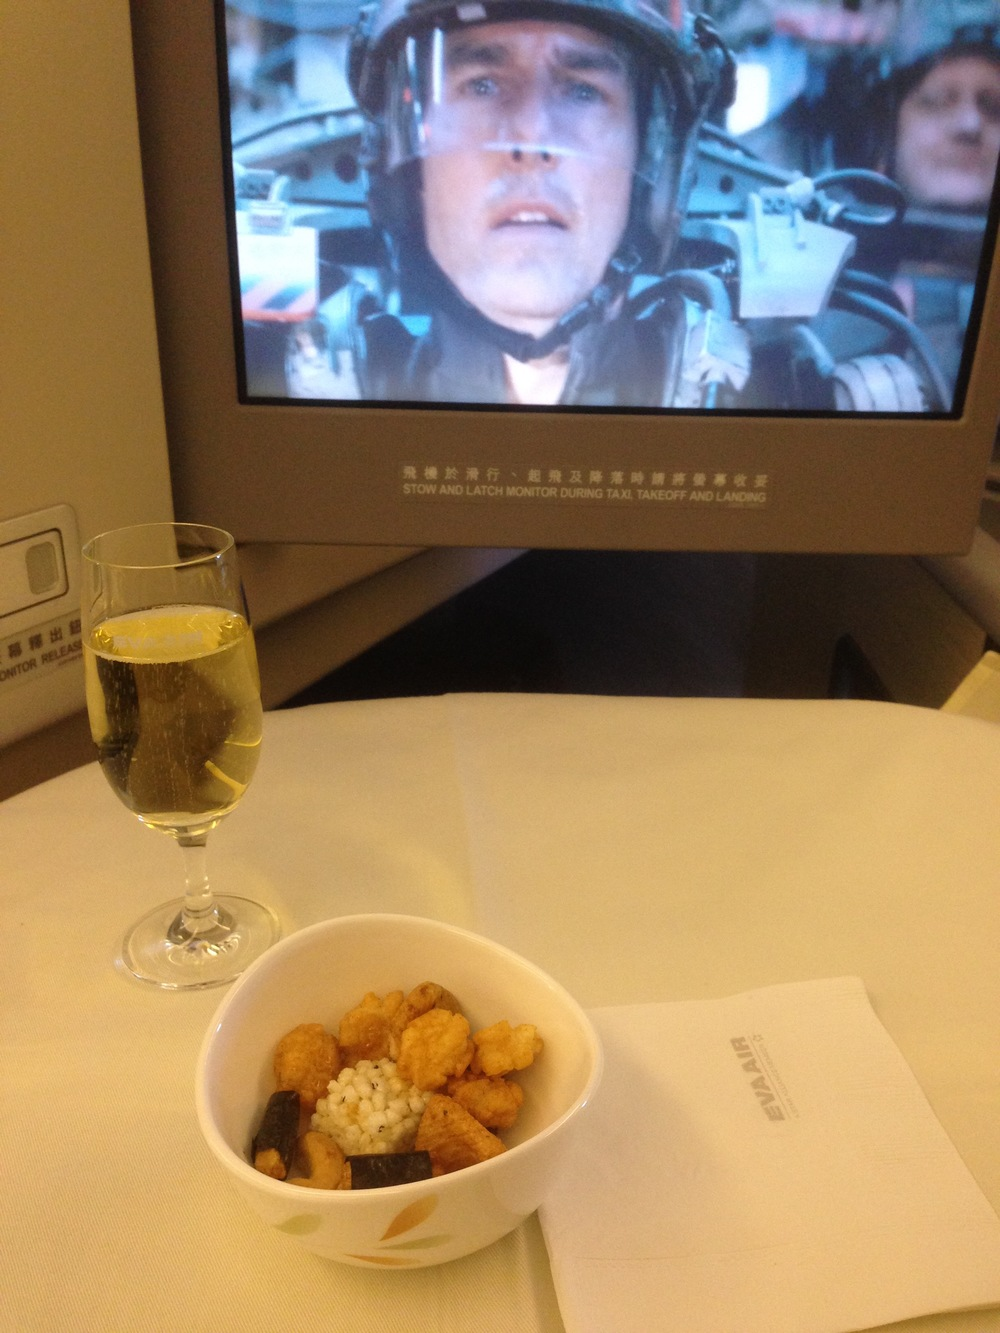 Champagne and Tom Cruise!